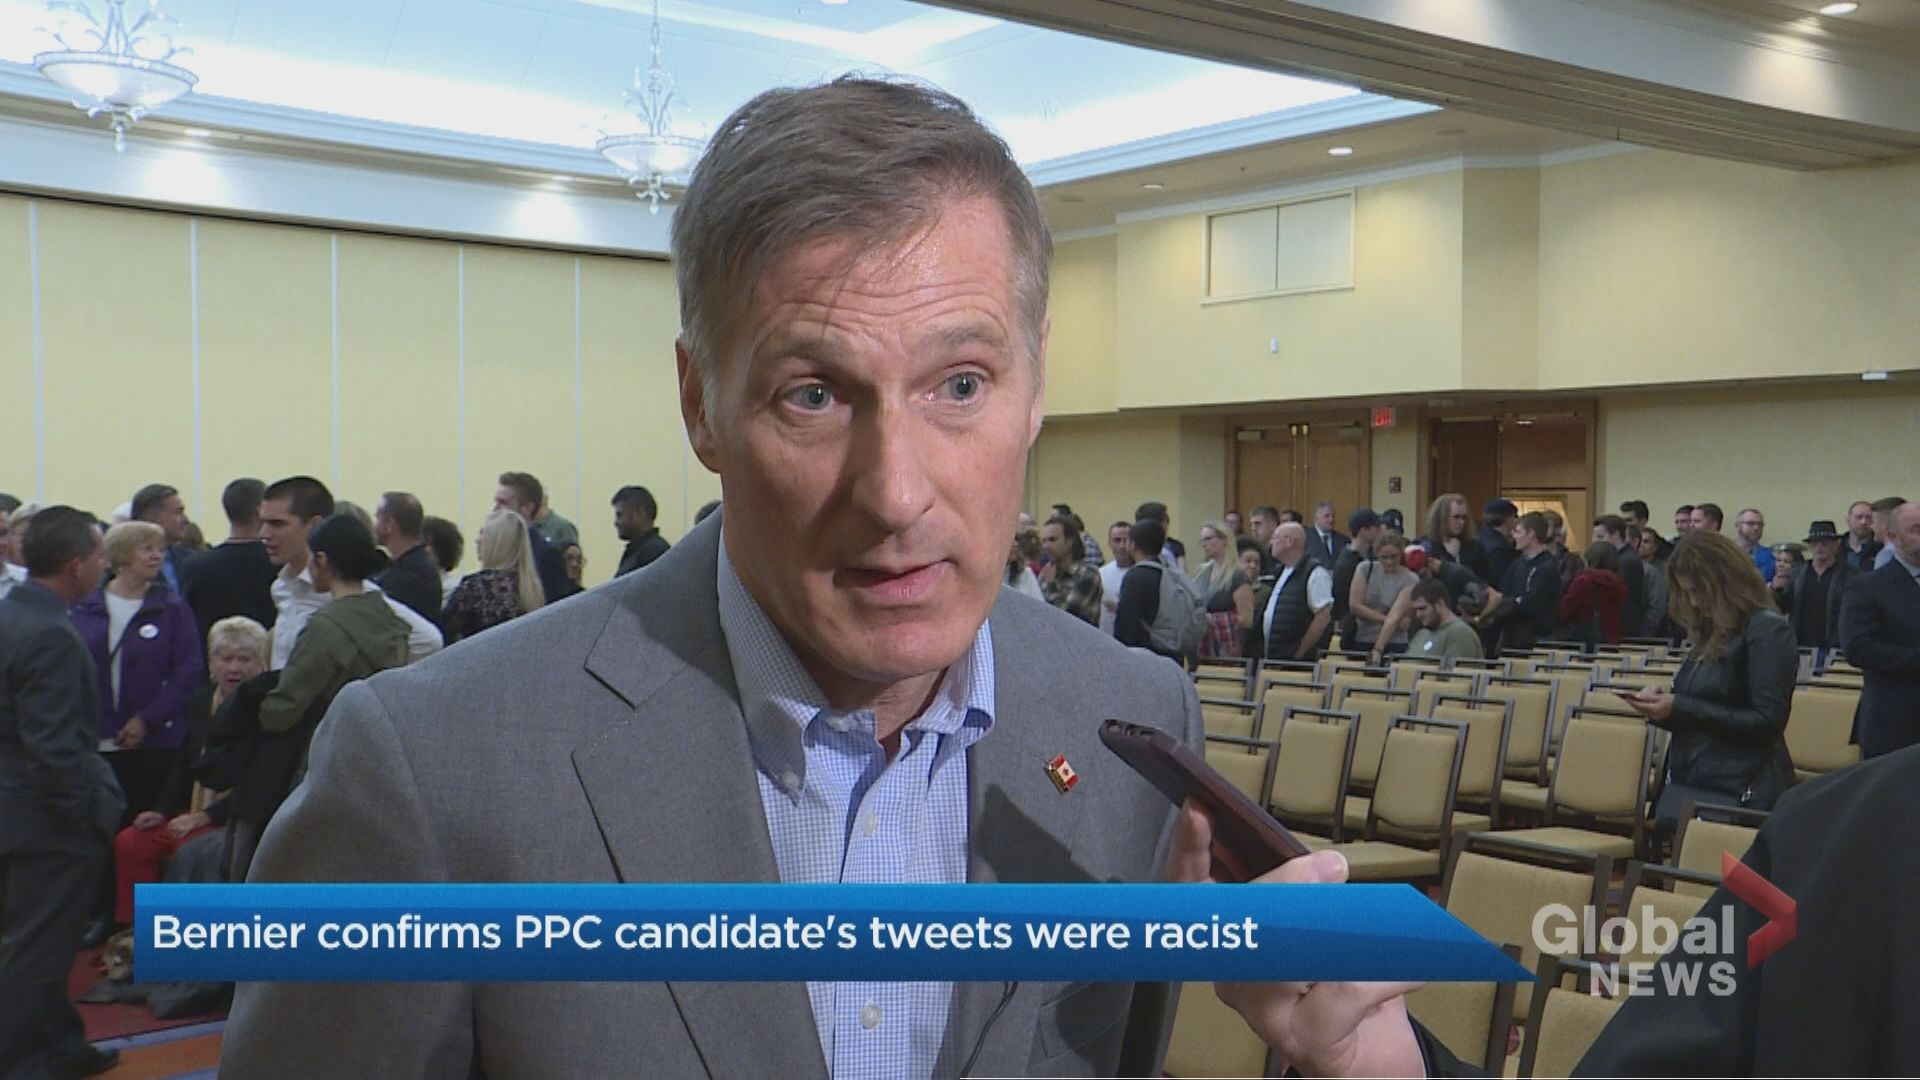 'Absolutely, yes:' Bernier confirms Nova Scotia PPC candidate's tweets were racist